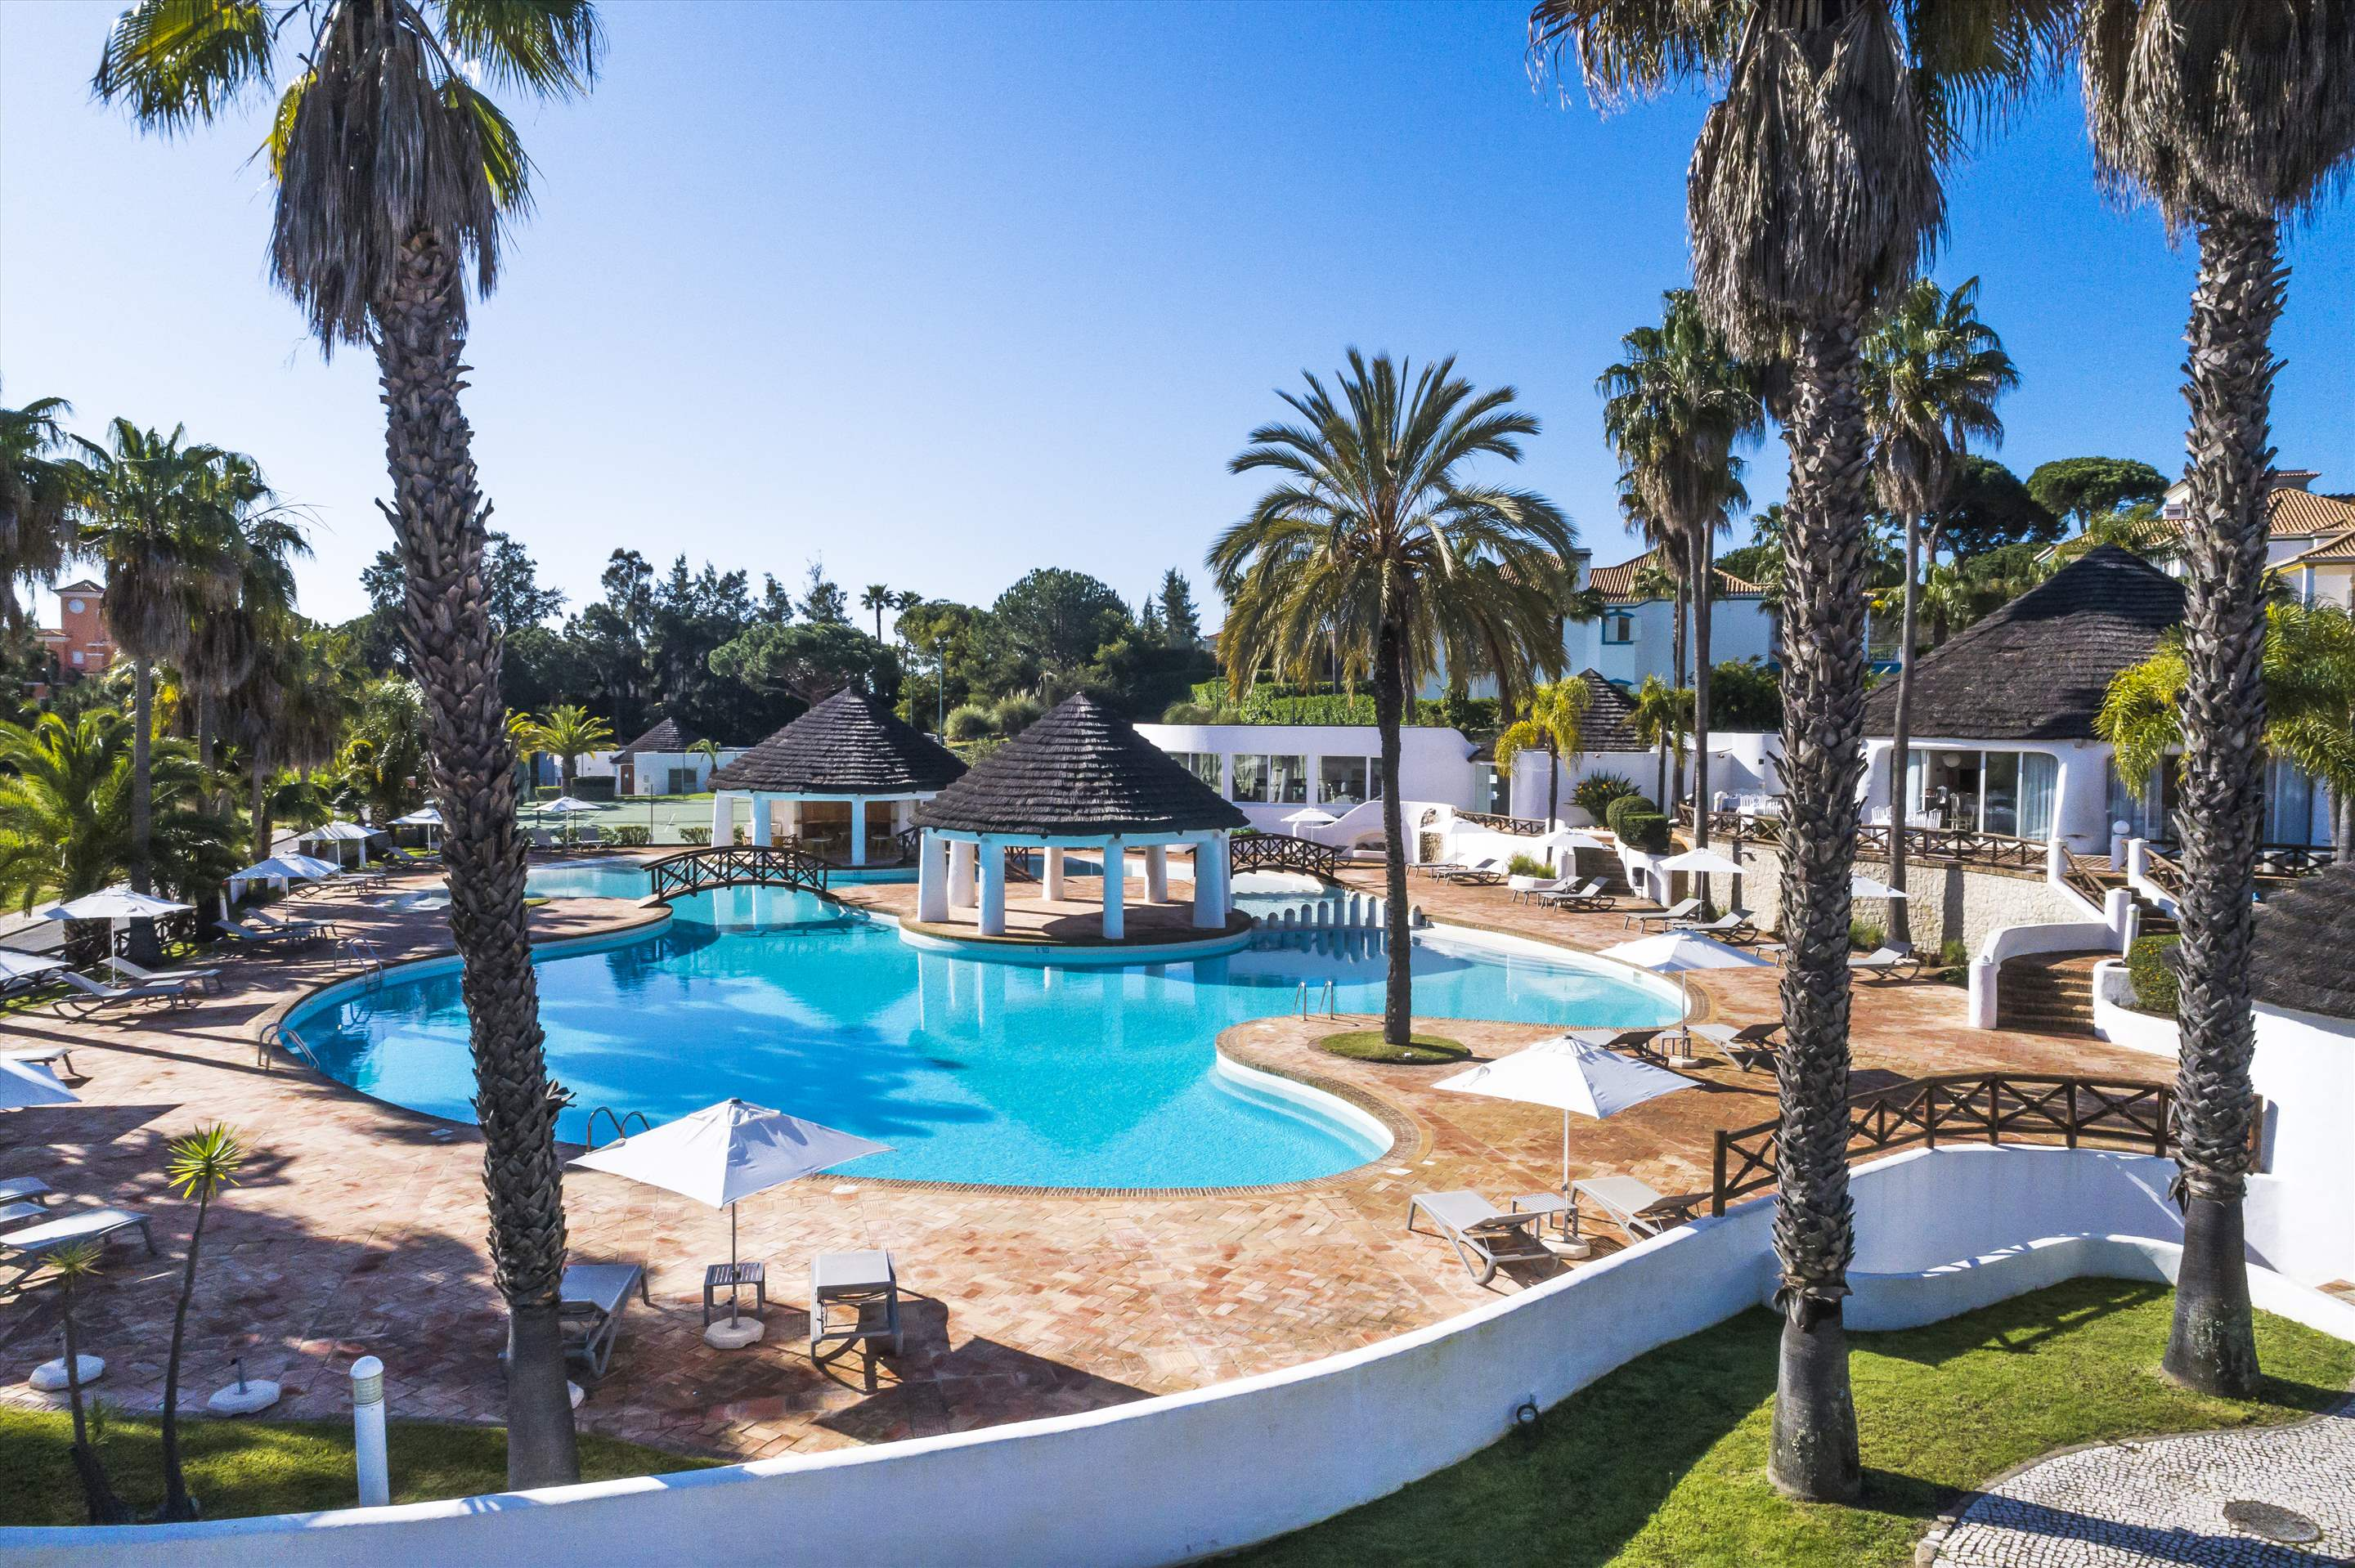 Encosta do Lago 1 Bedroom Apt, Top Floor, 1 bedroom apartment in Encosta do Lago Resort, Algarve Photo #2